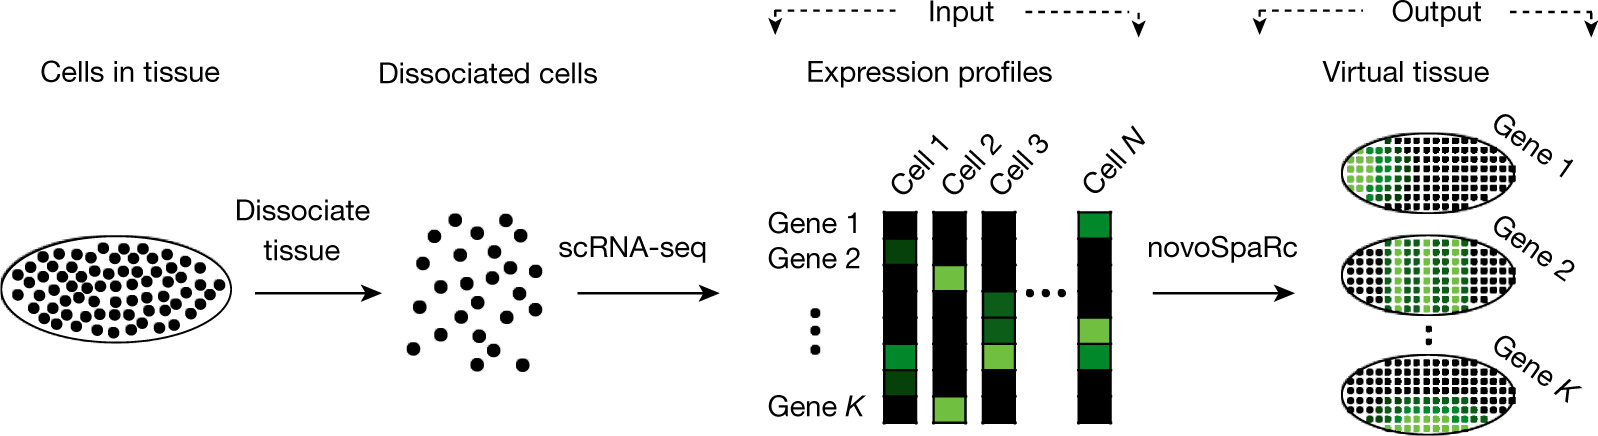 Gene expression cartography